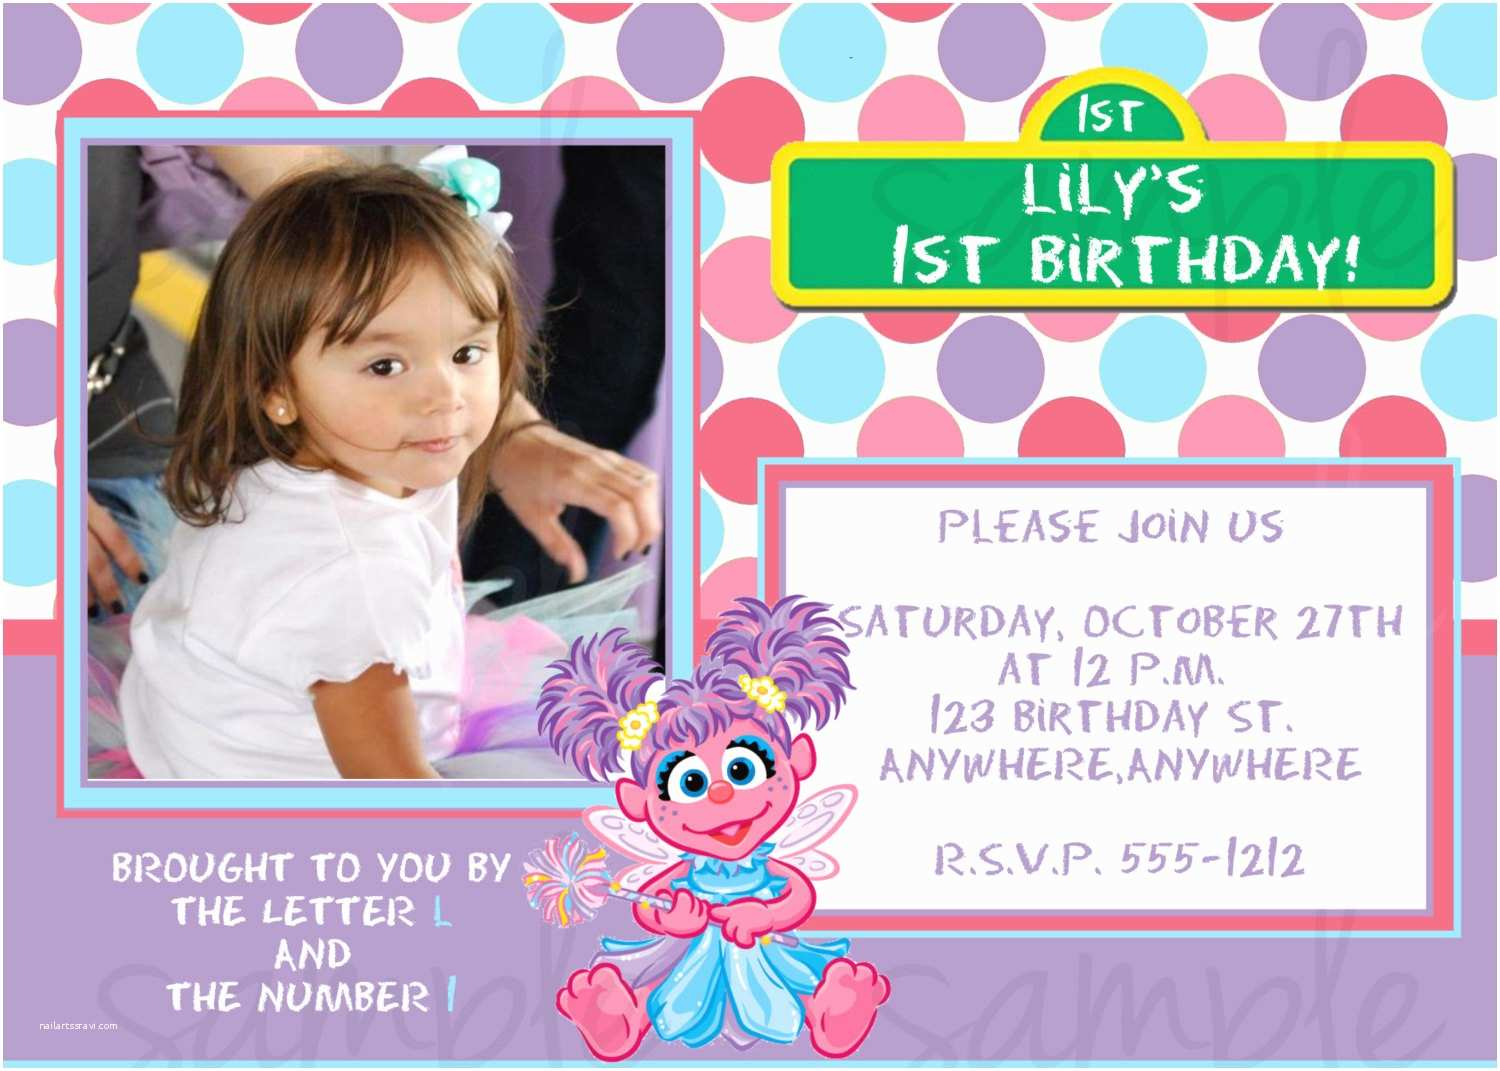 Personalized Birthday Invitations Elmo Birthday Invitations Kids Can't Wait to E